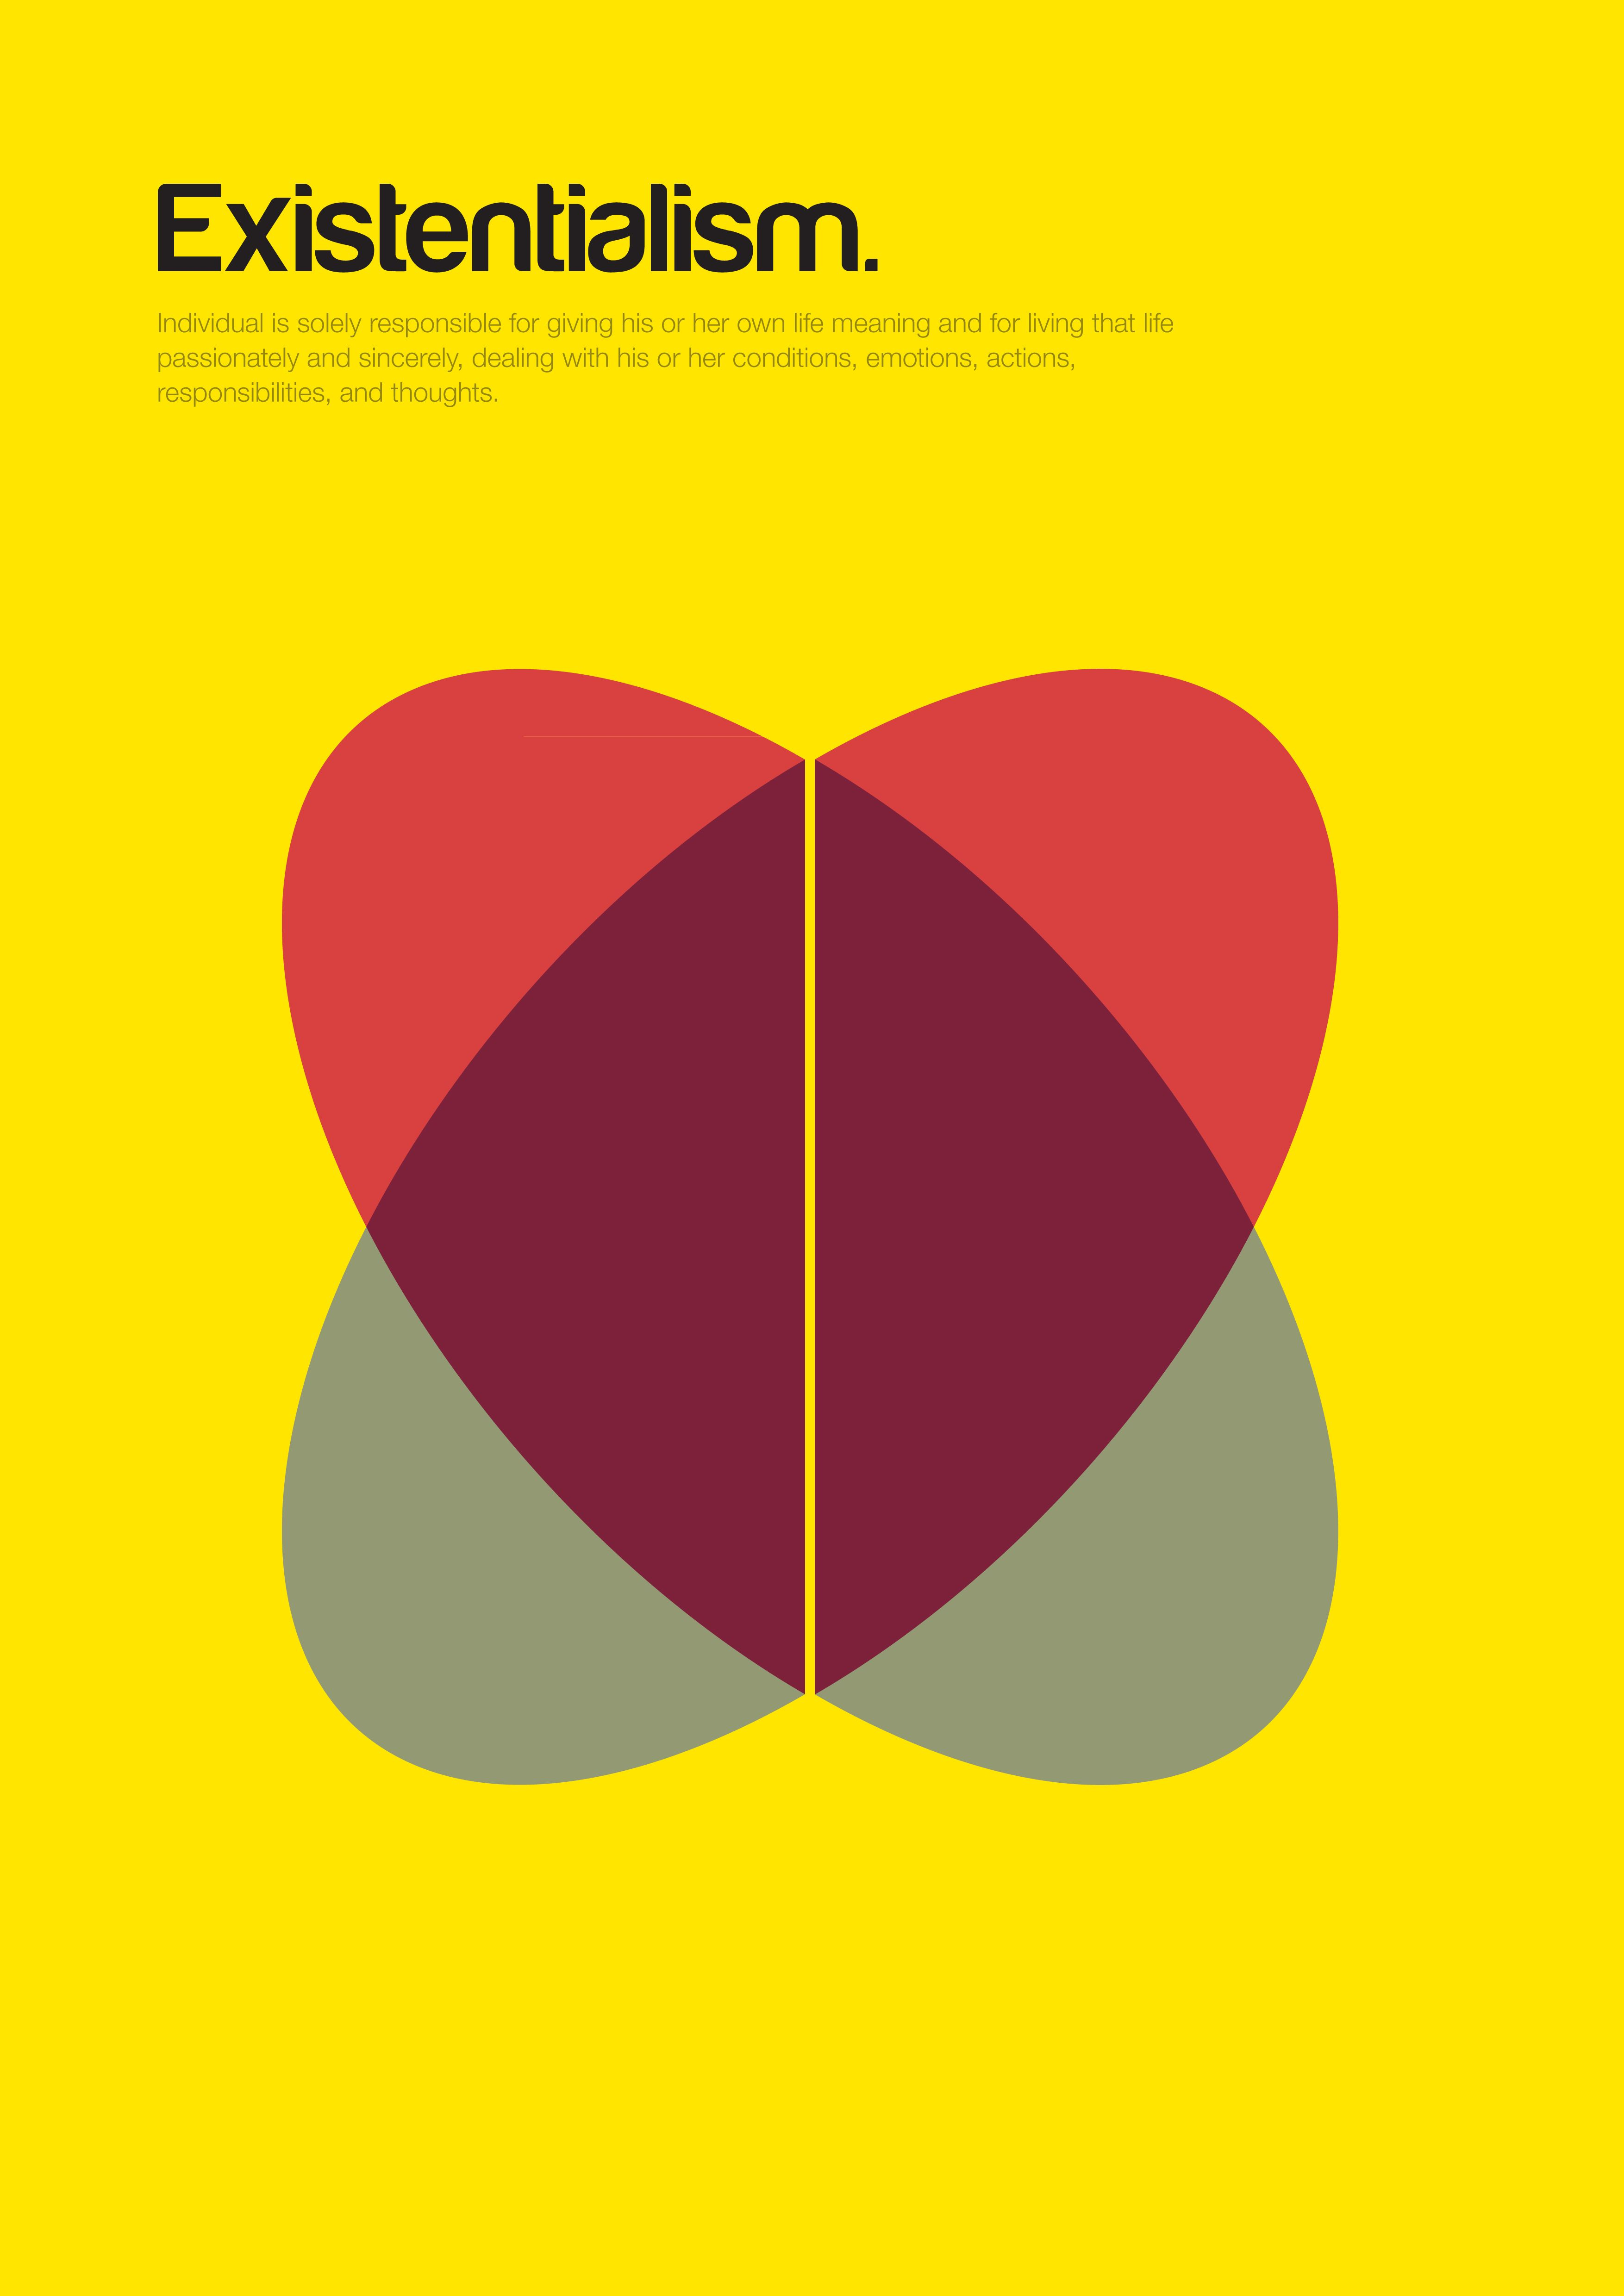 Pin On Design Posters